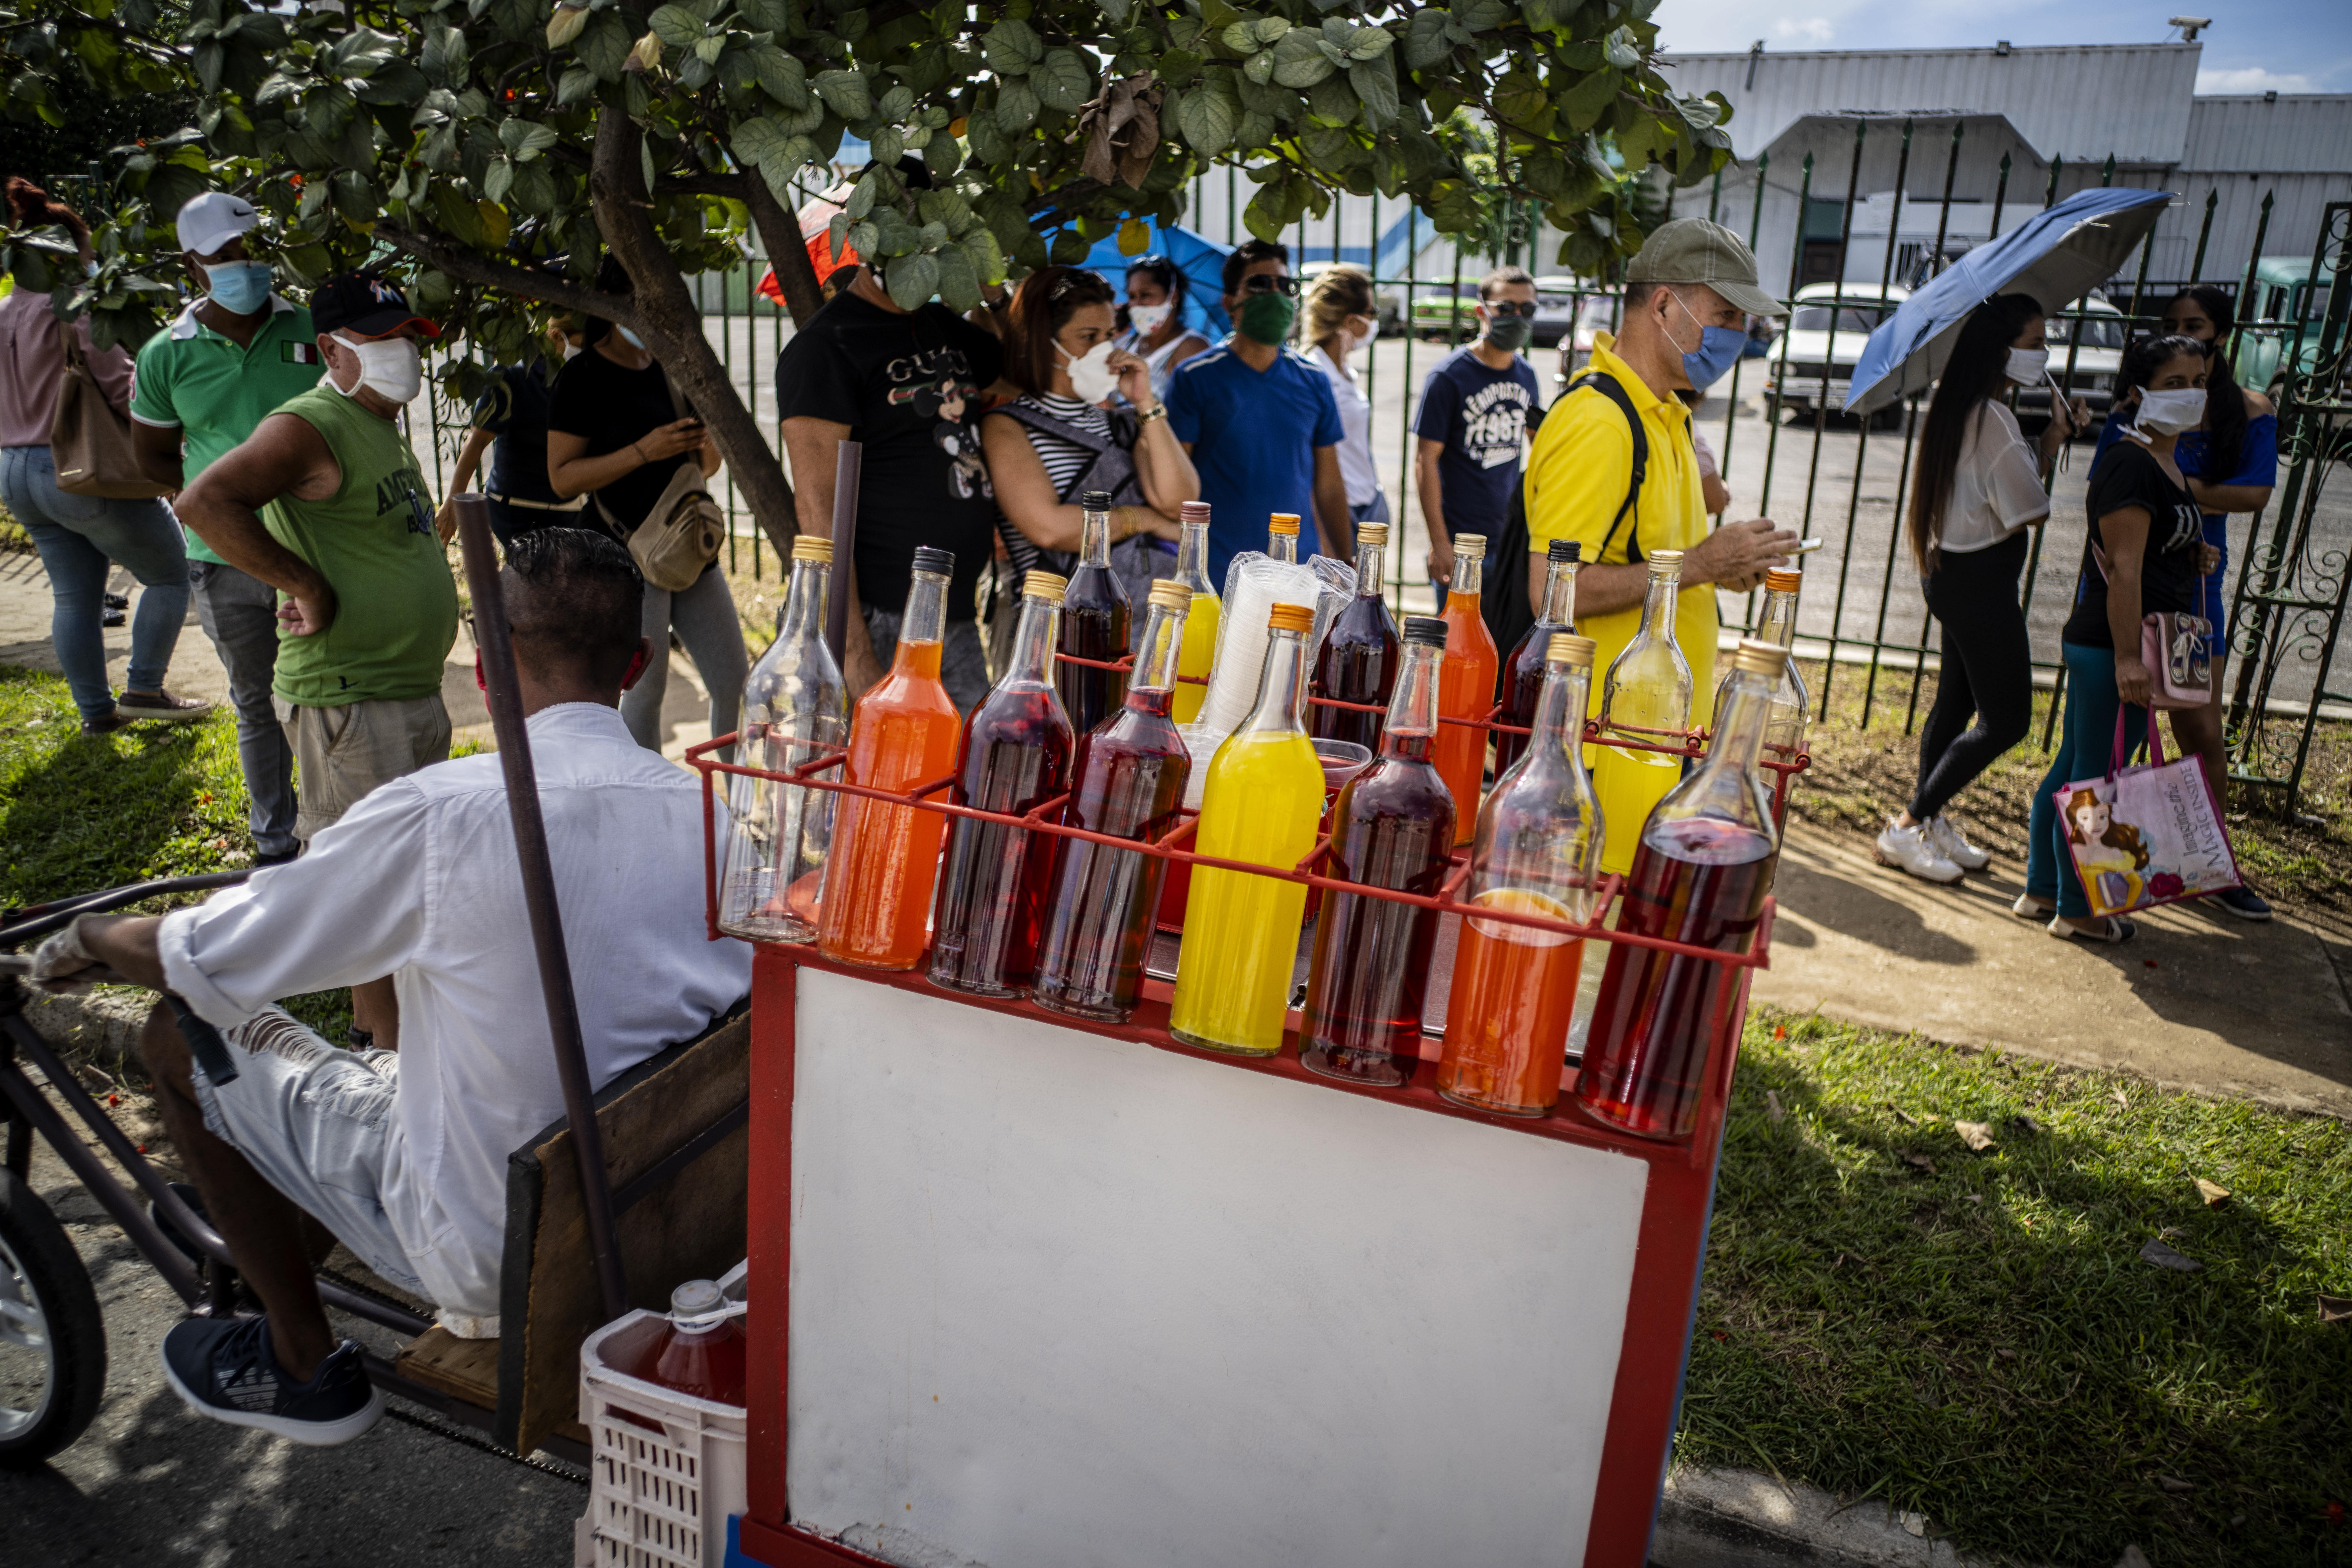 A snow cone vendor looks for customers amid a line of people, all wearing protective face masks as a precaution during the spread of the new coronavirus, waiting to enter a grocery store that accepts U.S. dollars in Havana, Cuba, Monday, July 20, 2020. Cuba has expanded the types of stores that accept dollars for payment to include food stores, as part of the government's effort to capture much needed hard currency to shore up the island's ailing economy. (AP Photo/Ramon Espinosa)